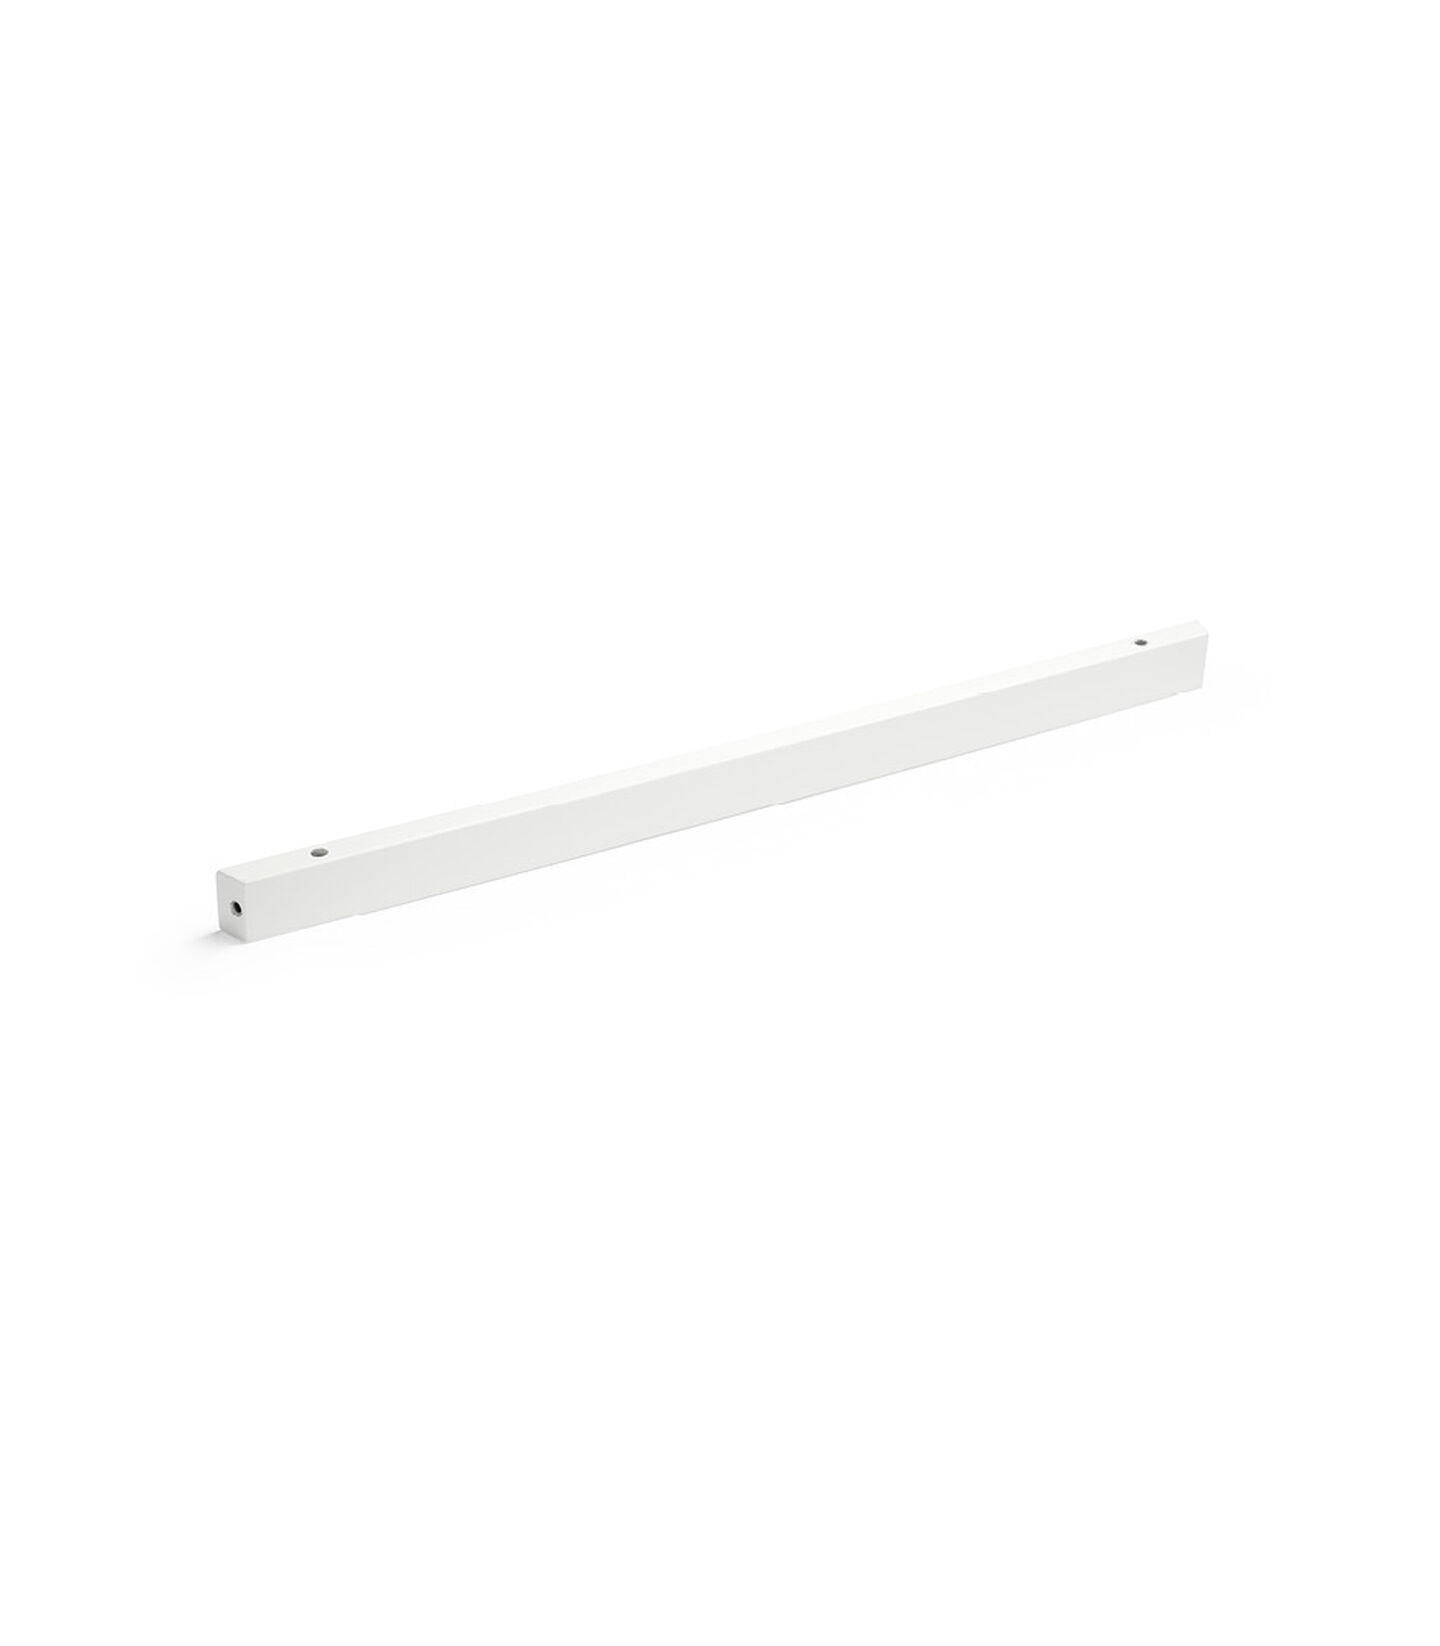 Stokke® Care™ Tablette Inférieure Stretch Blanc, Blanc, mainview